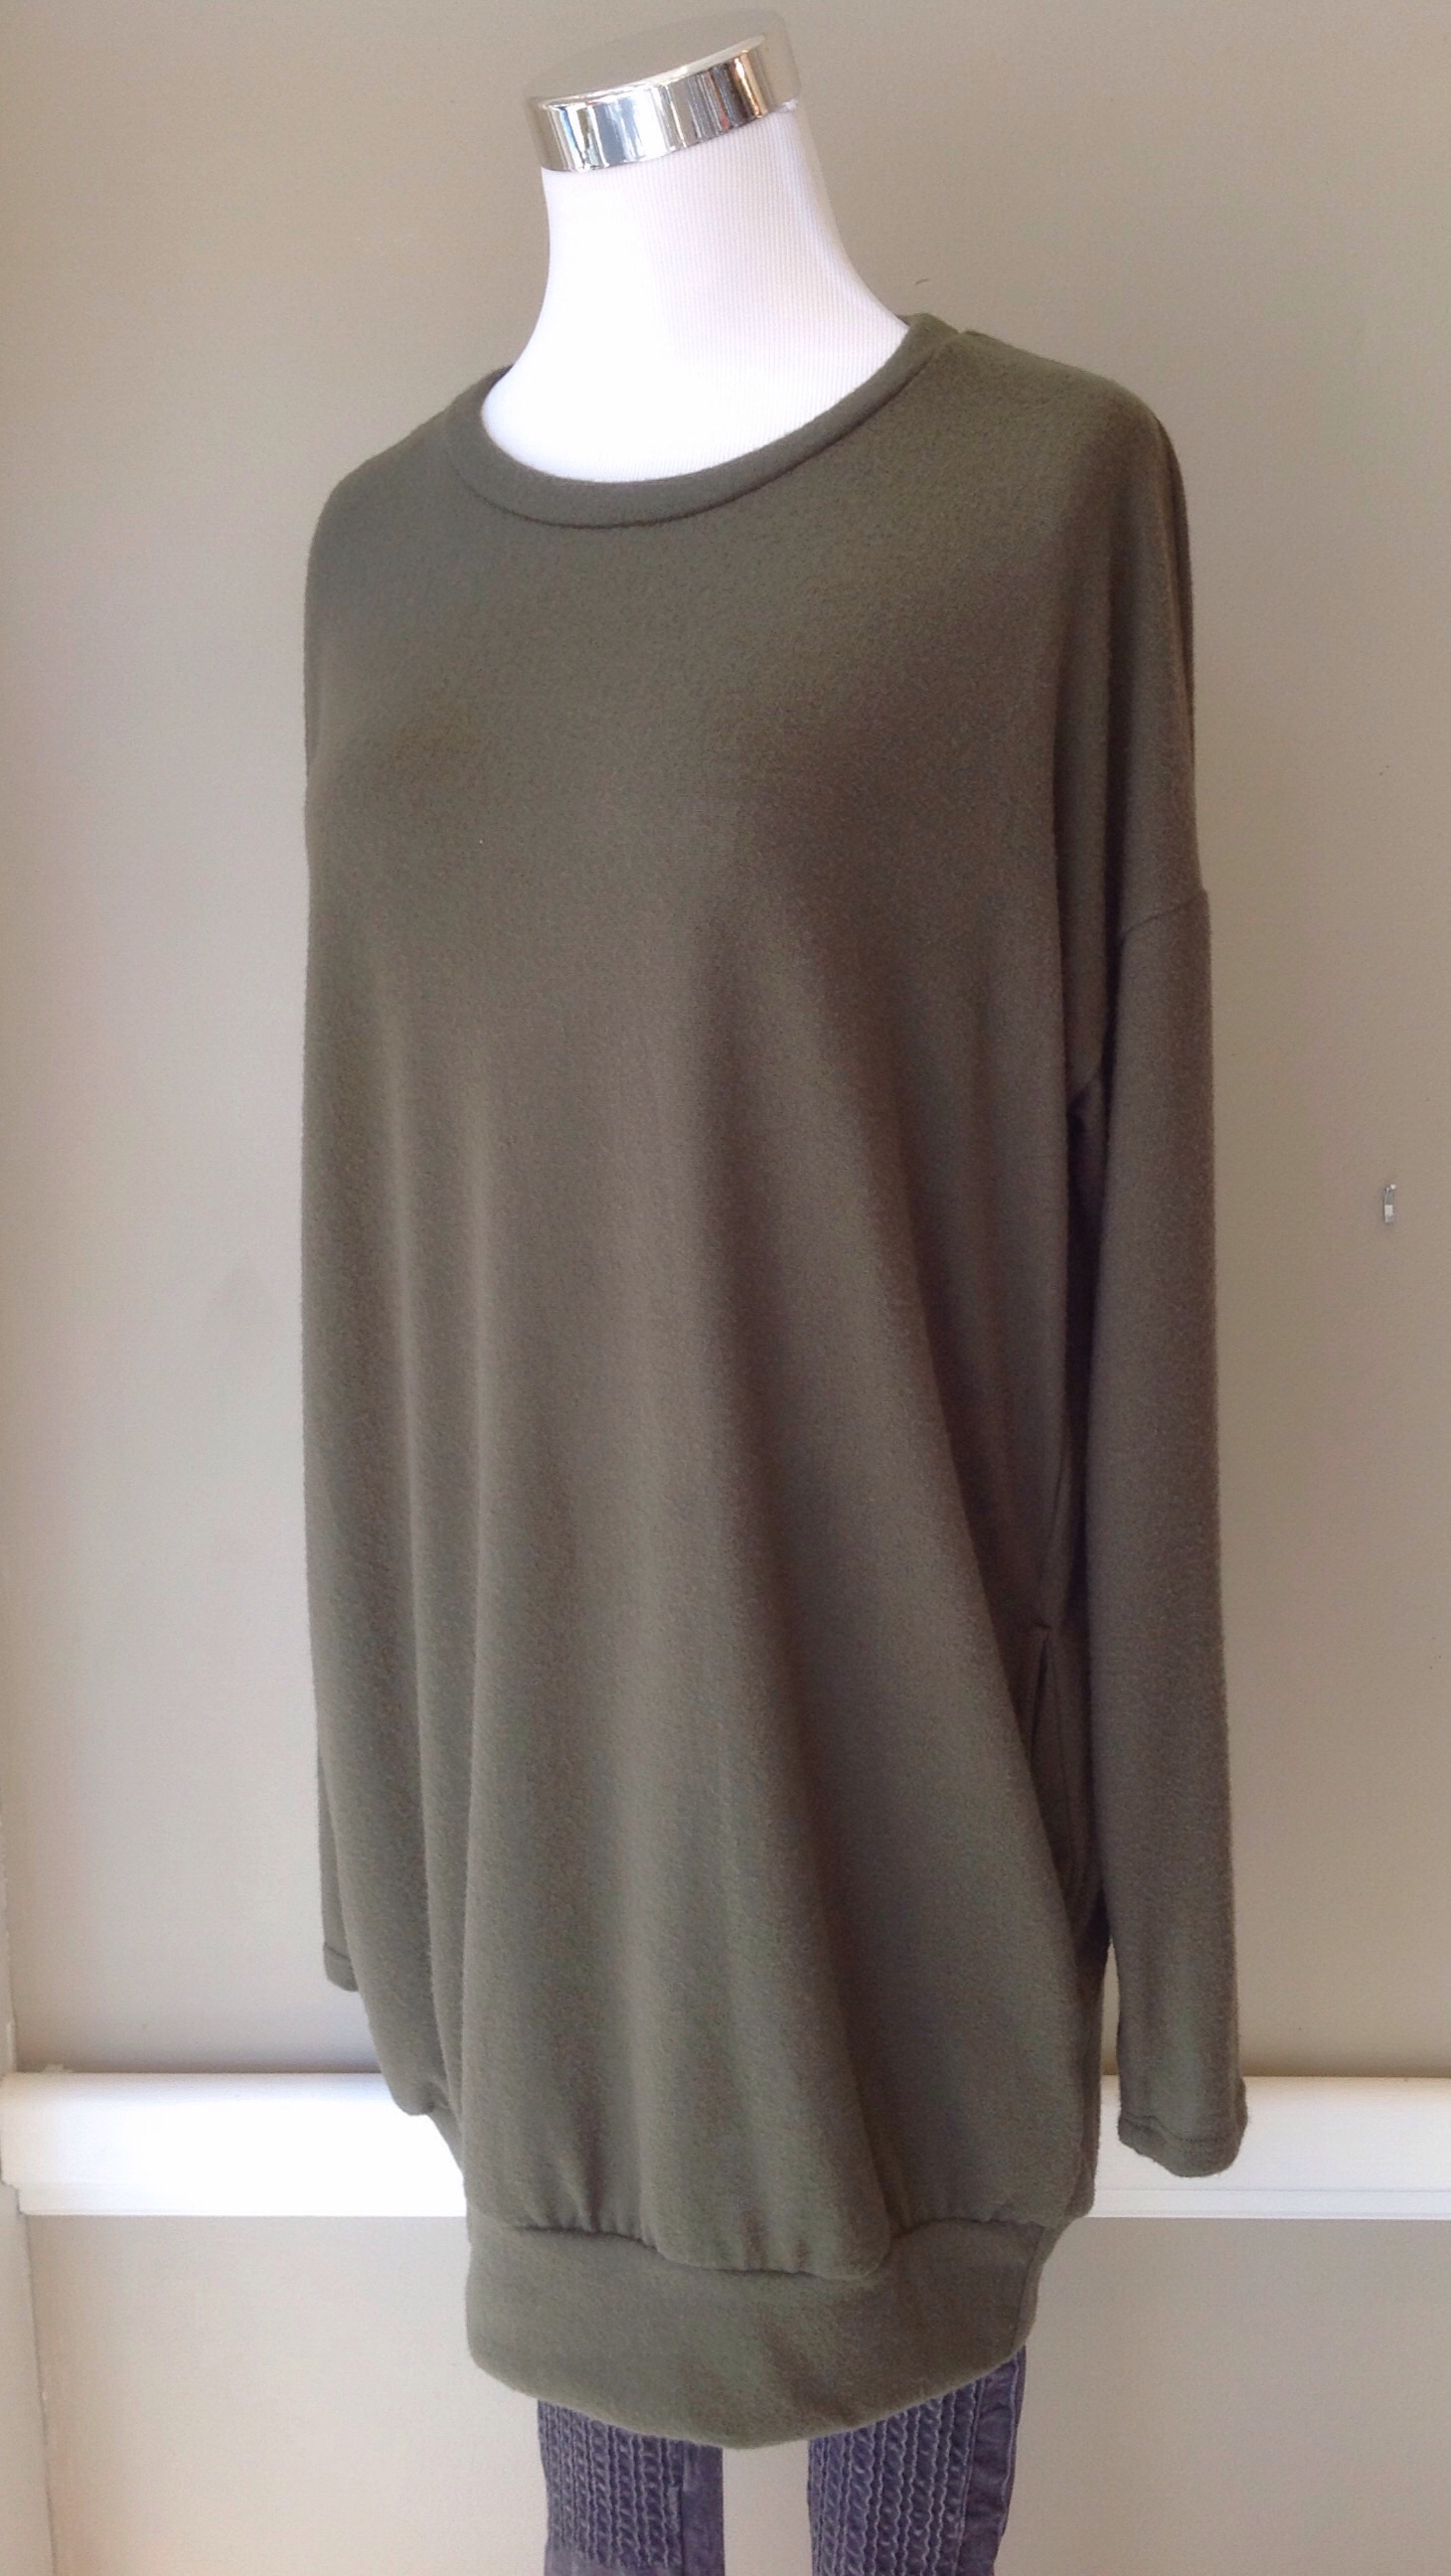 Cherish soft knit sweater with side pockets in olive, $34